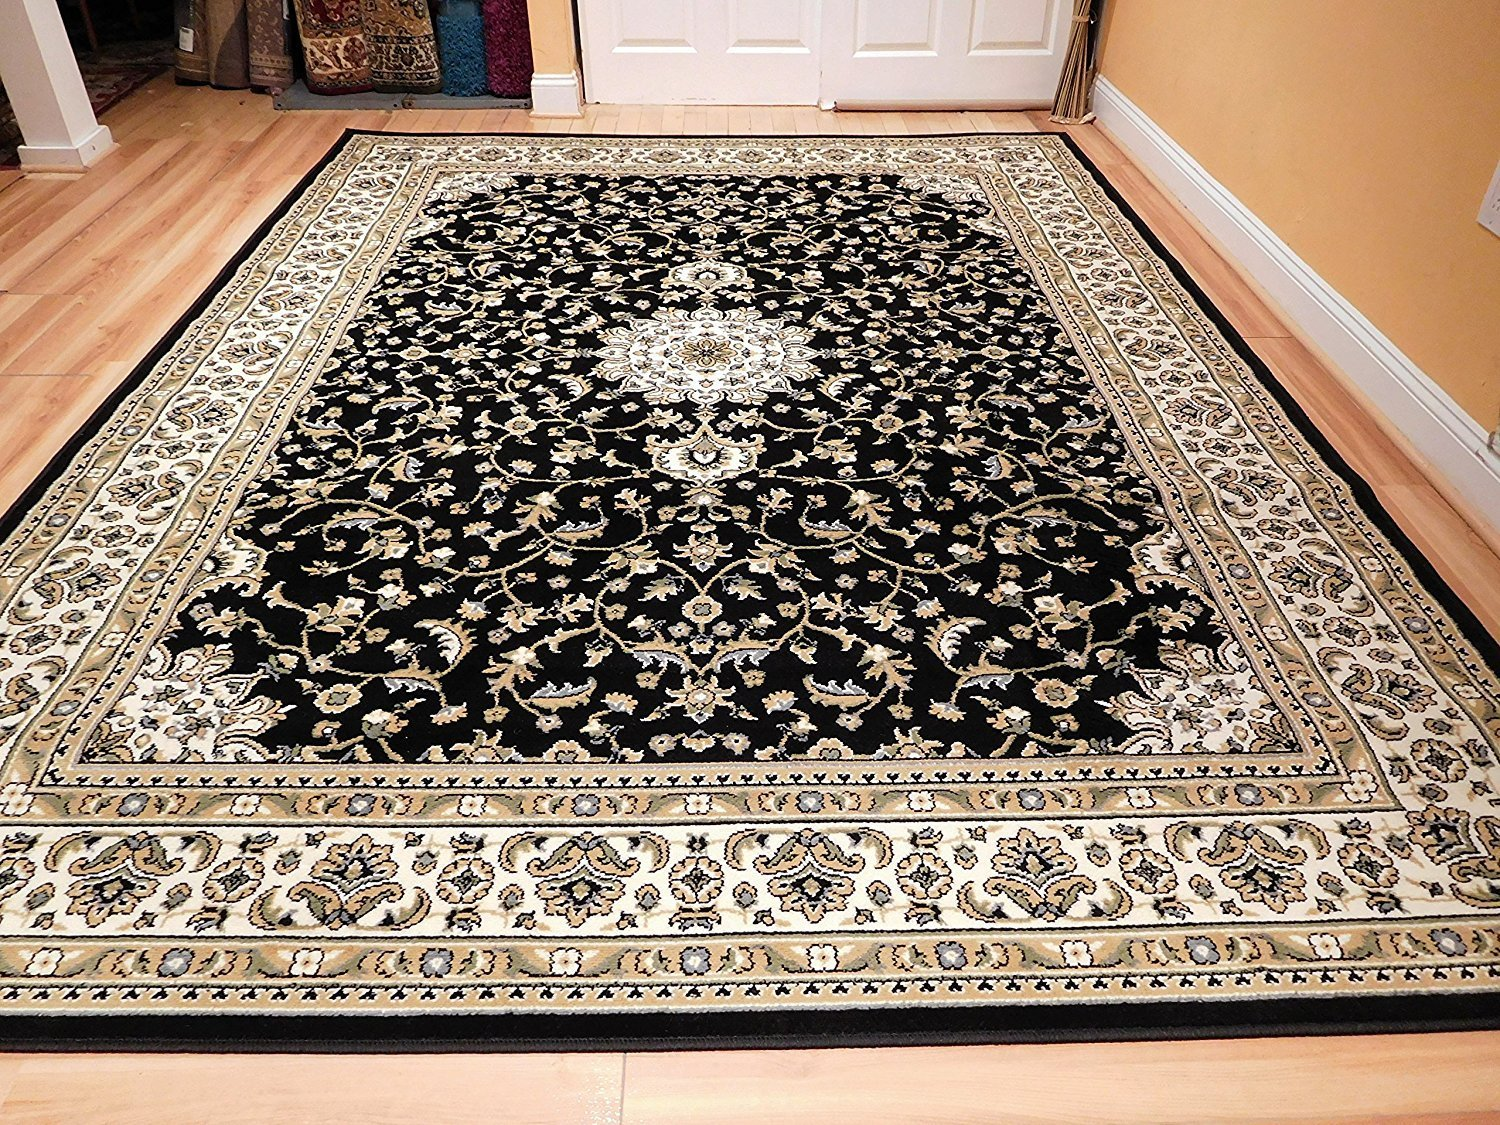 Traditional Area Rugs 2x3 Small Rugs for Black Bedroom Door Mat Area